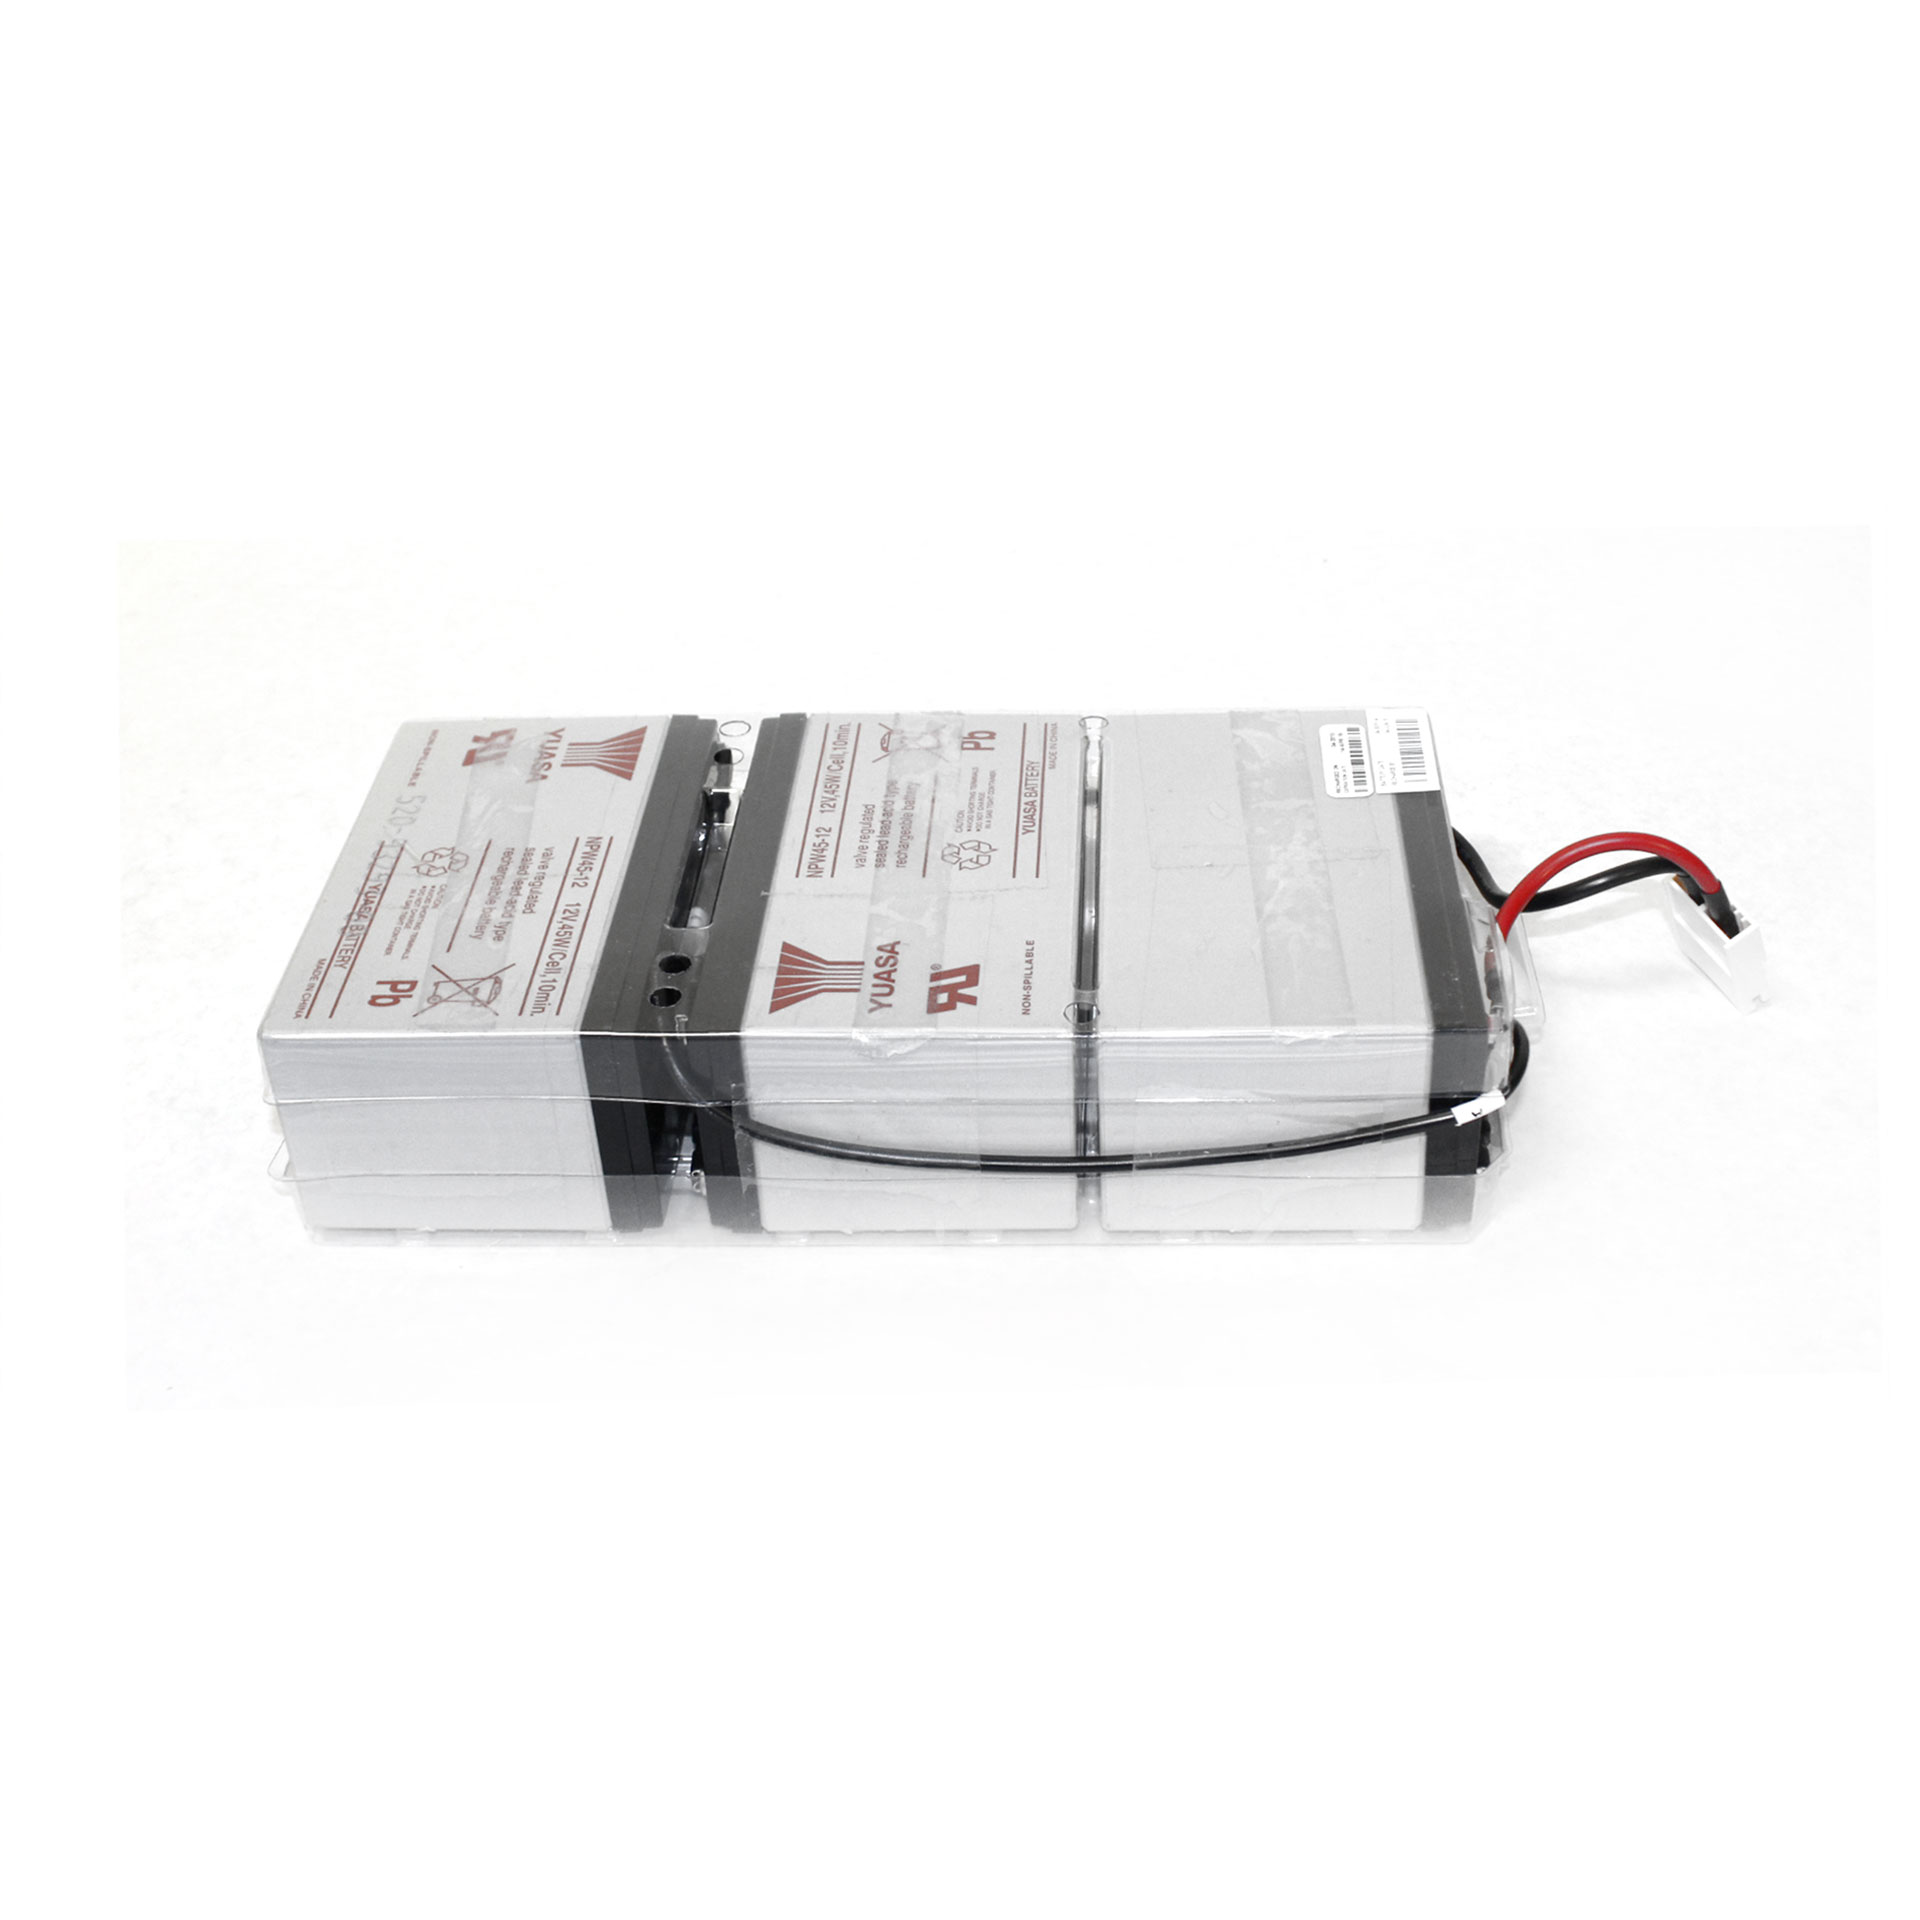 Eaton UPS Replacement Battery for 9130 700VA 1KVA 744-A0394-00P